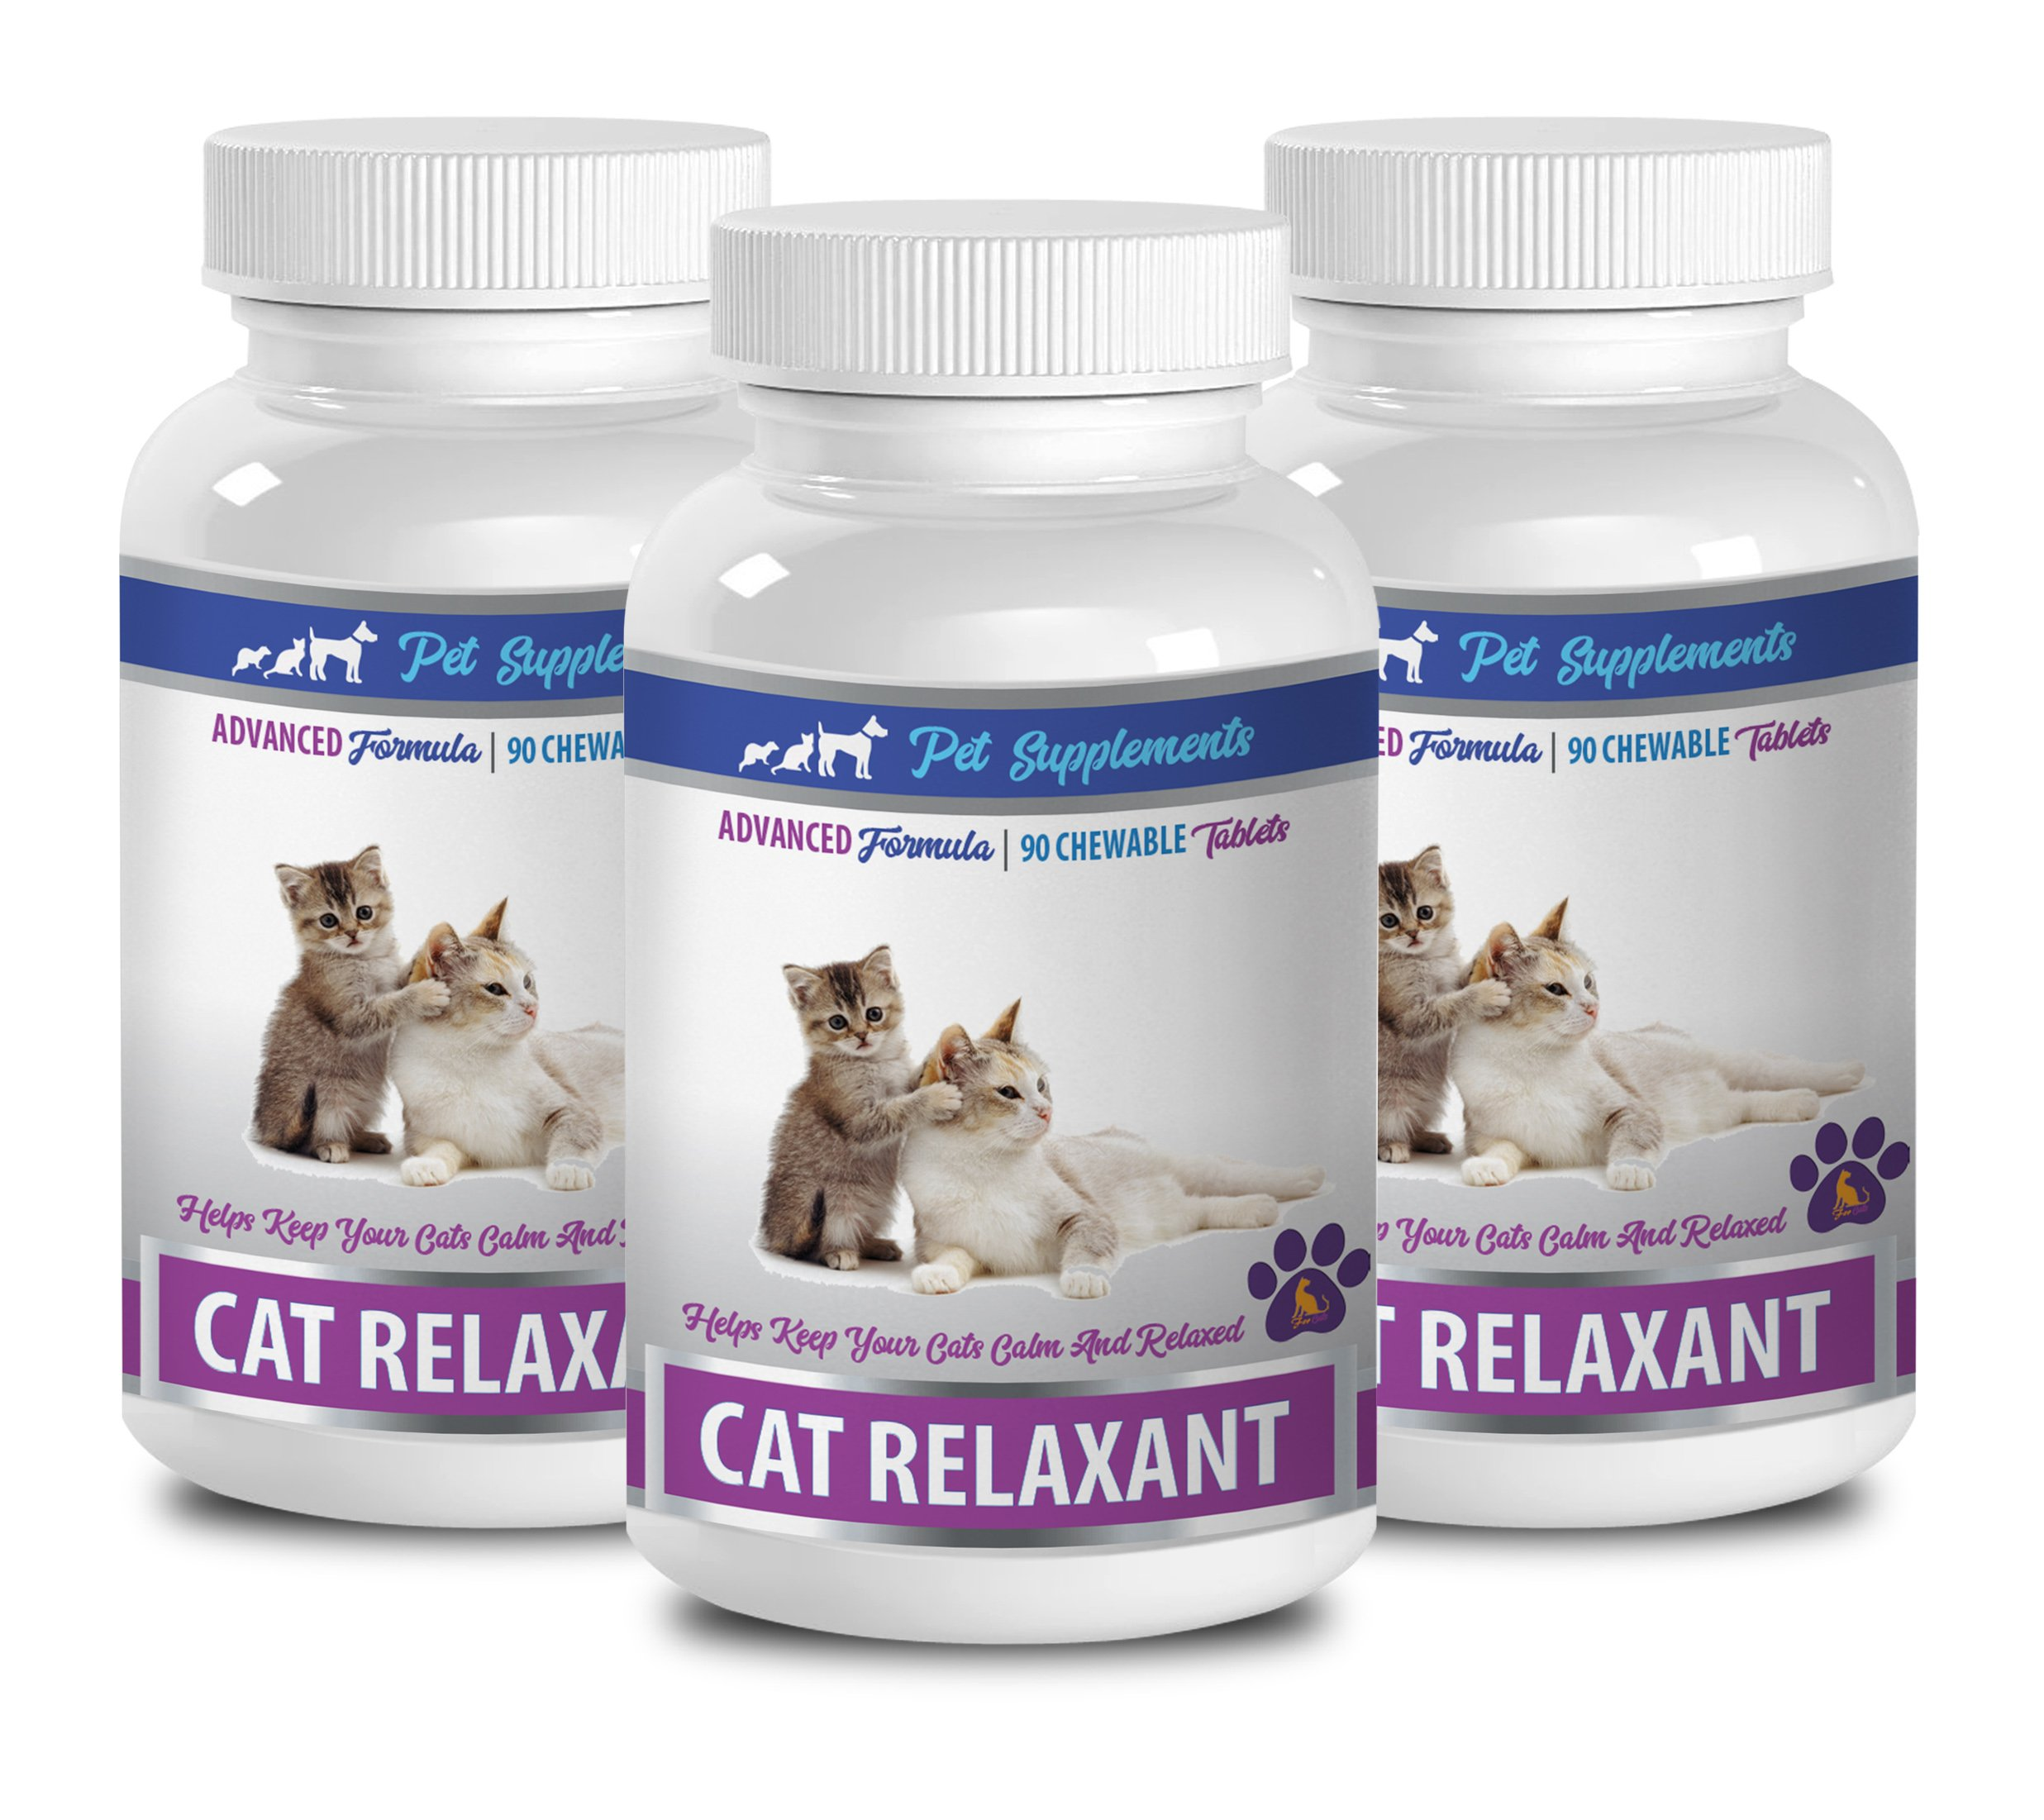 PET SUPPLEMENTS cat travel calming products - CAT RELAXANT - KEEPS CATS CALM AND RELAXED - CHEWABLE TREATS - anti anxiety cat - 3 Bottle (260 Chews)